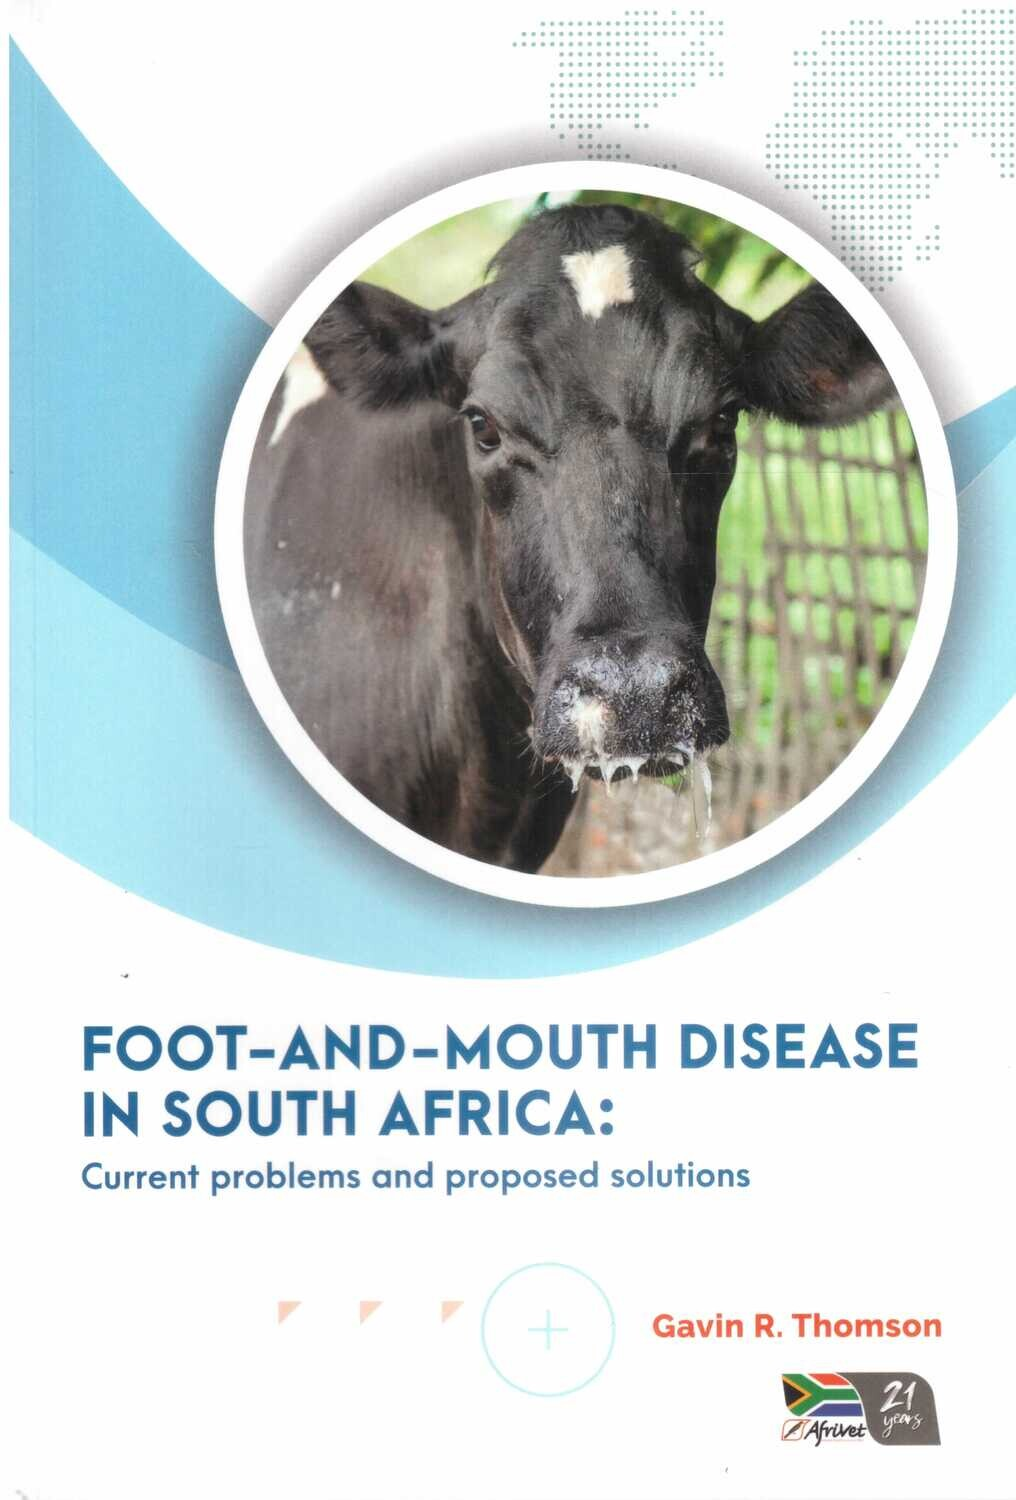 Foot-and-Mouth Disease in SA